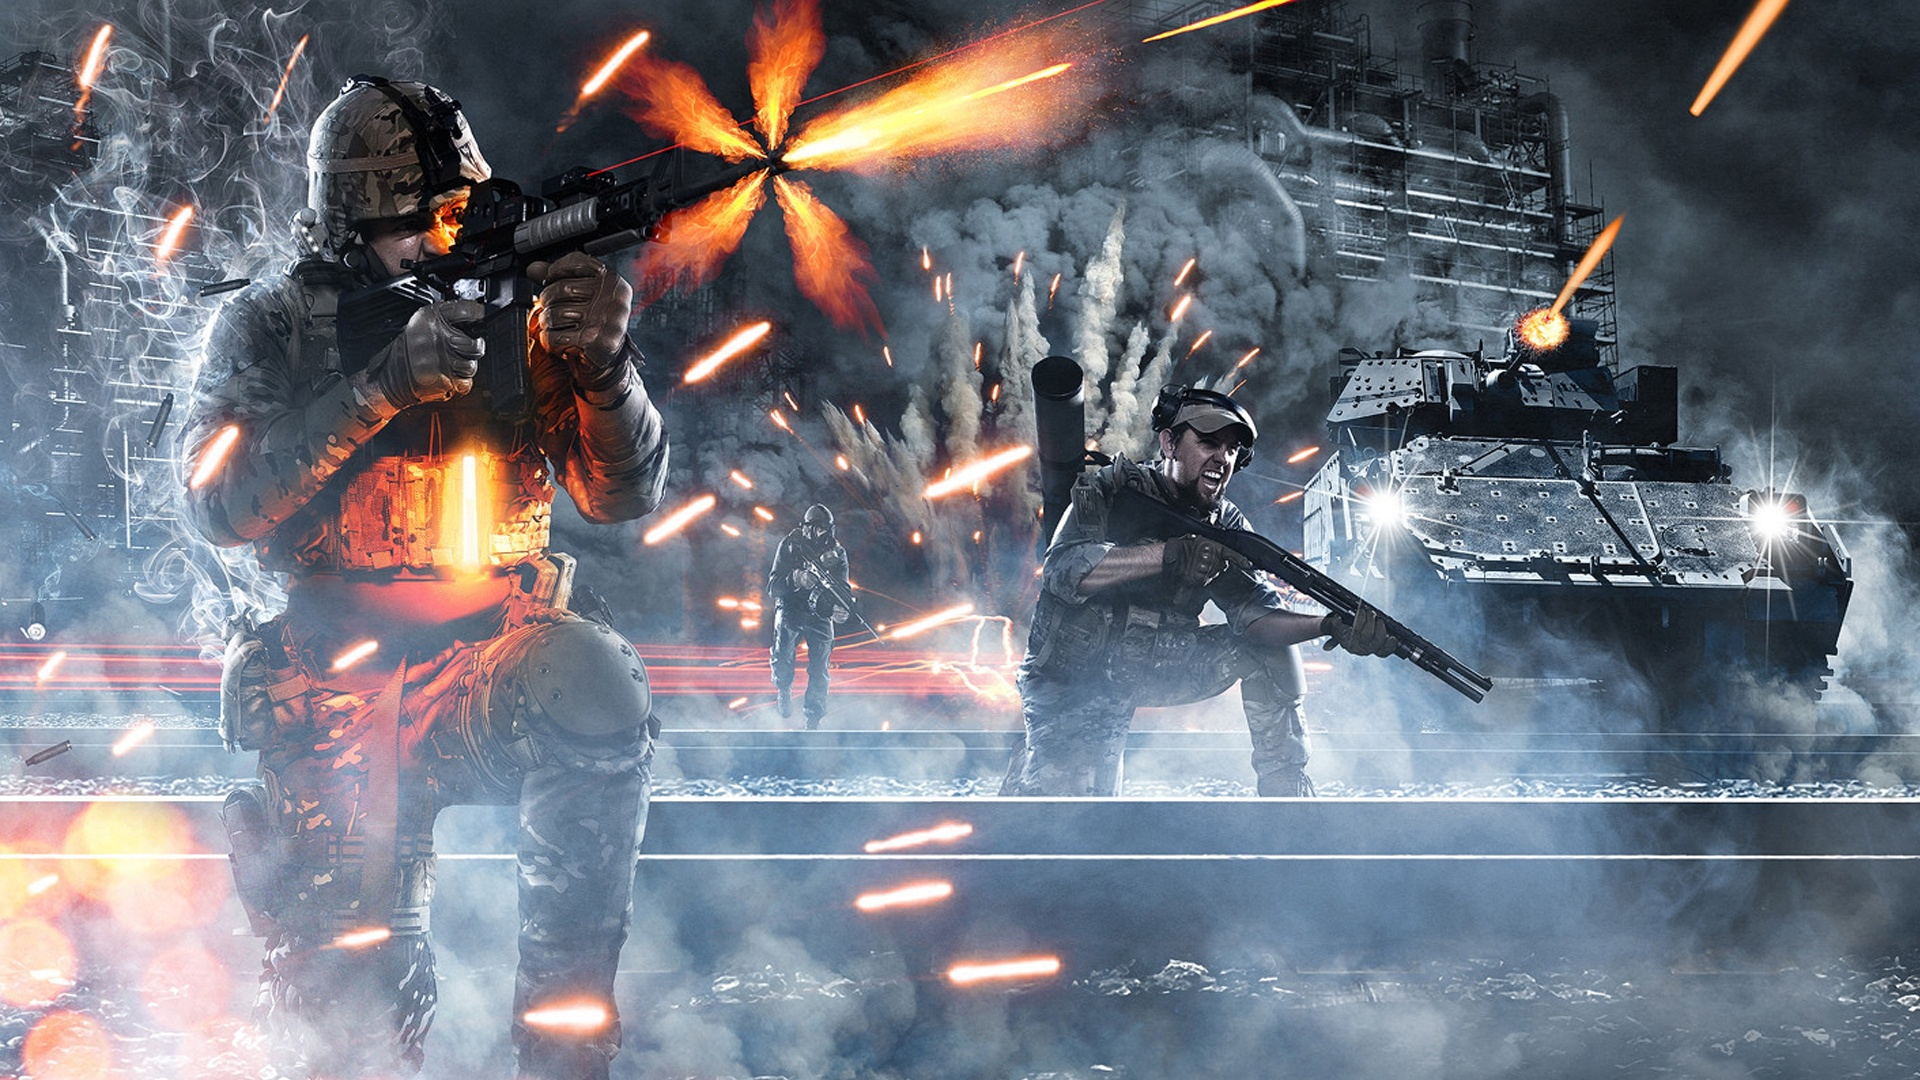 Download Wallpaper 1280x1280 Battlefield 4 Game Ea: Battlefield 4 Animated Wallpapers